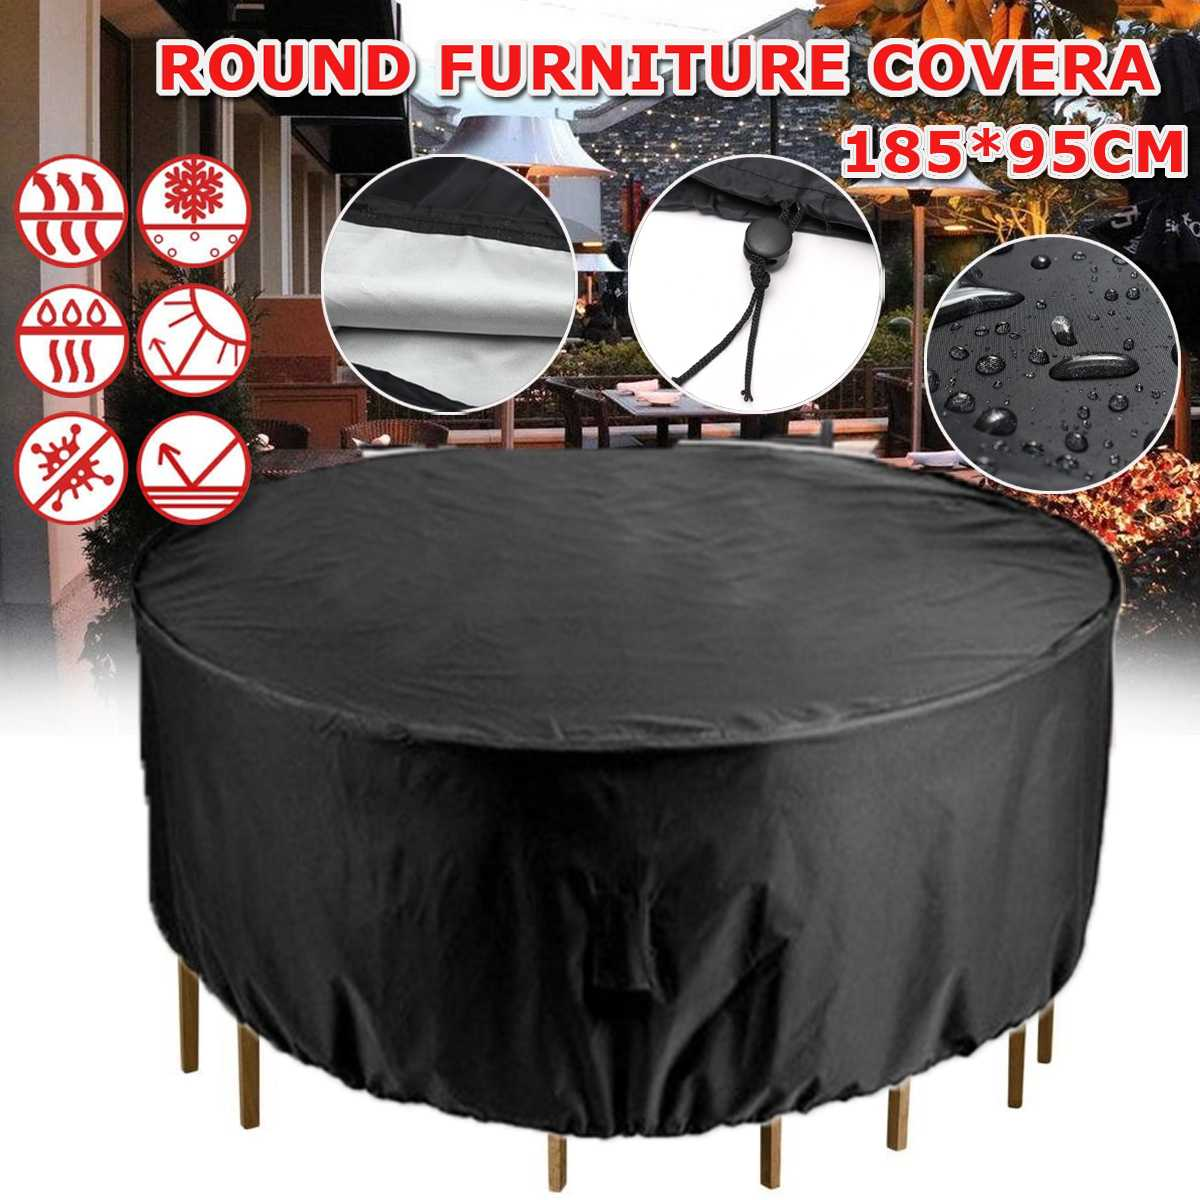 Round Anti-dust Cover Outdoor Garden Yard Patio Rain Snow Table Chair Furniture Waterproof Cover for Round Furniture 73x38 Inch 1